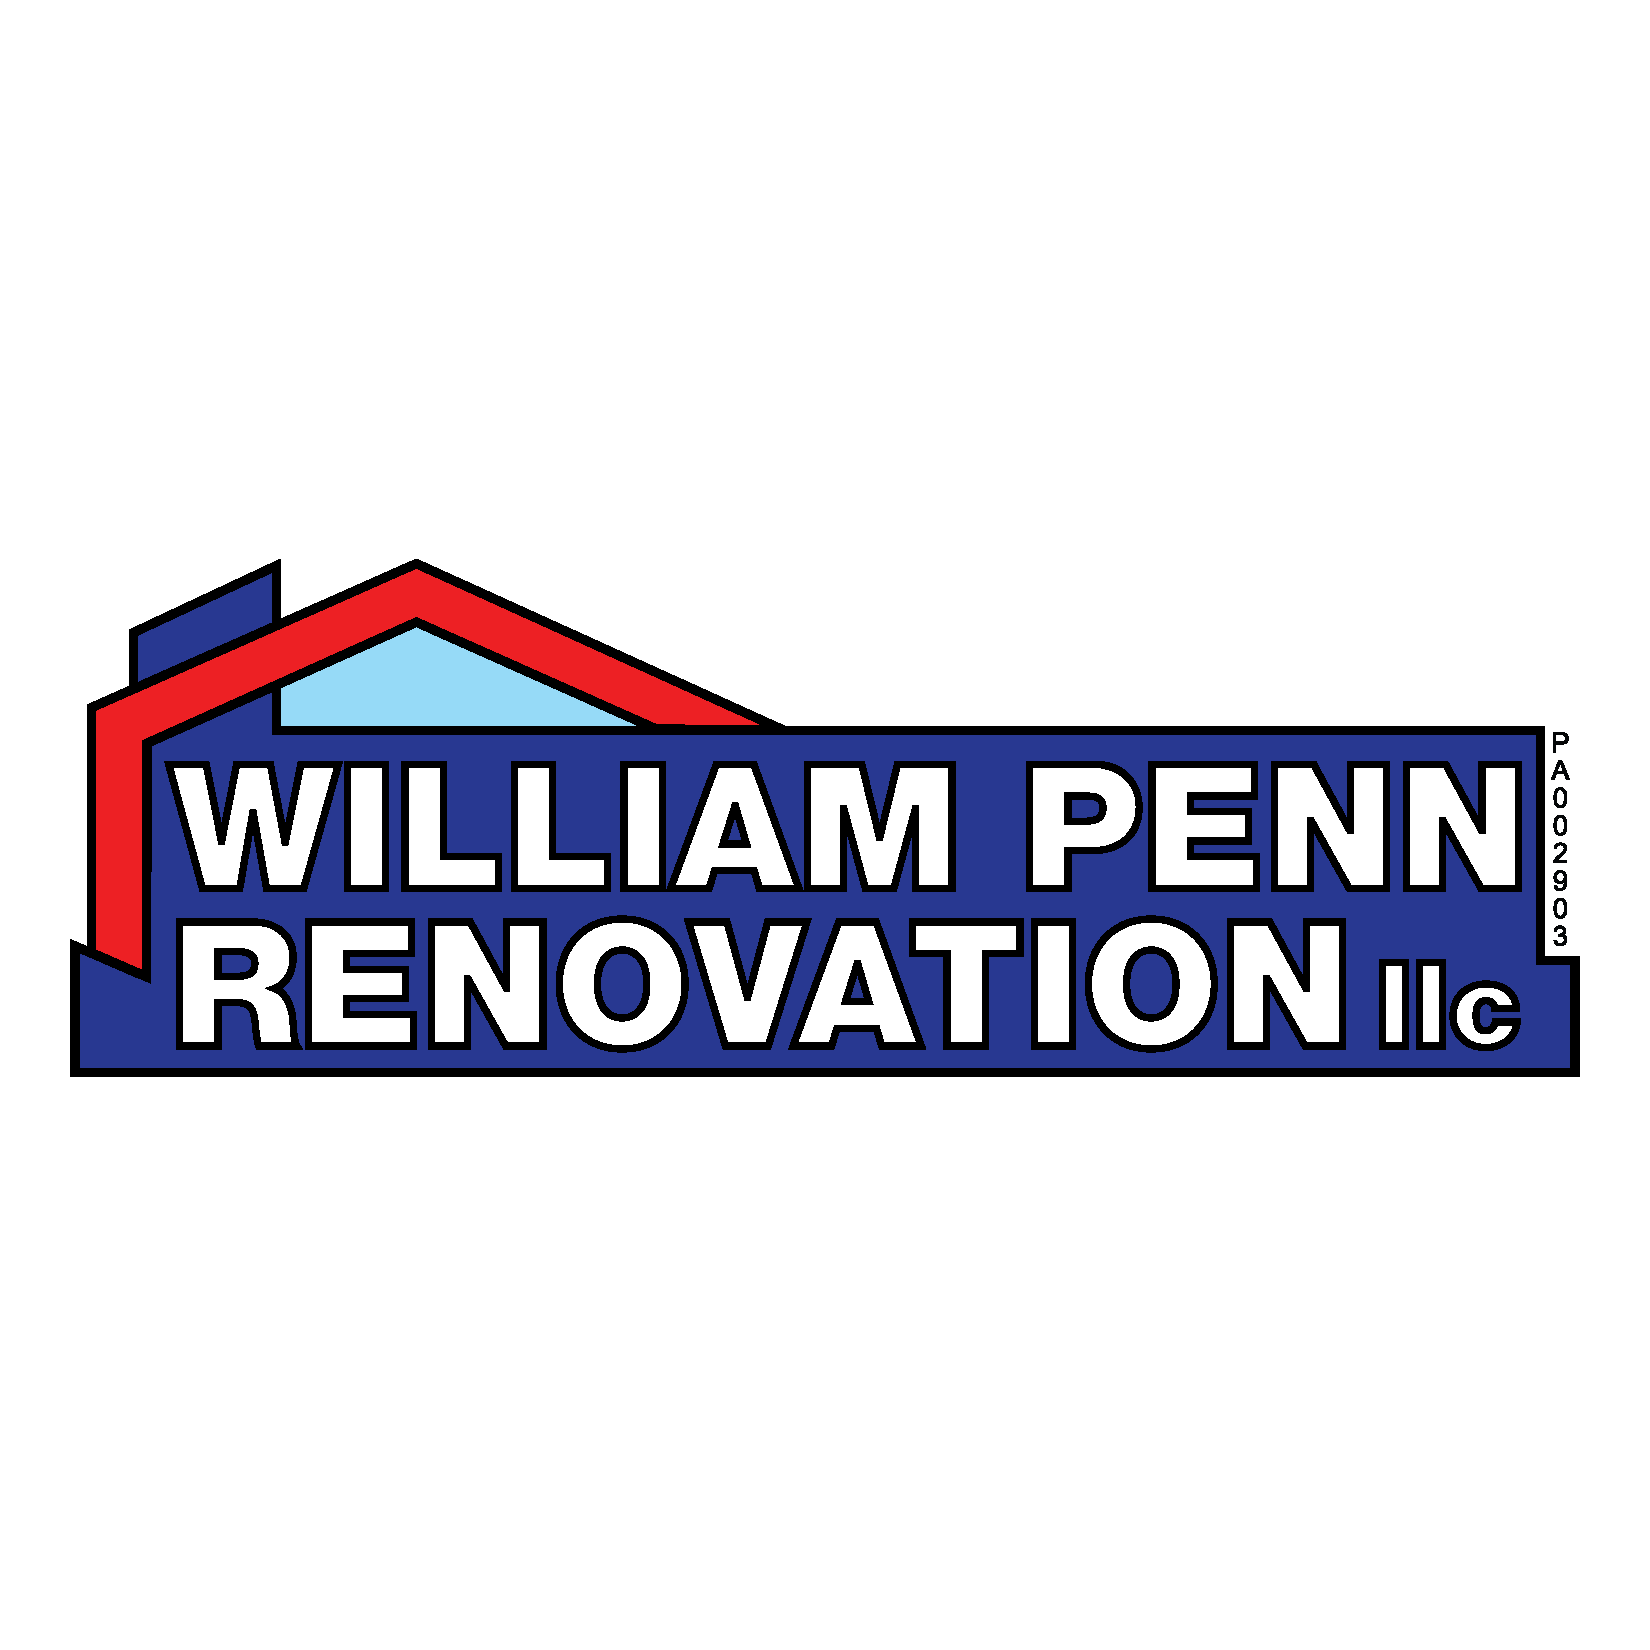 William Penn Renovation llc Logo